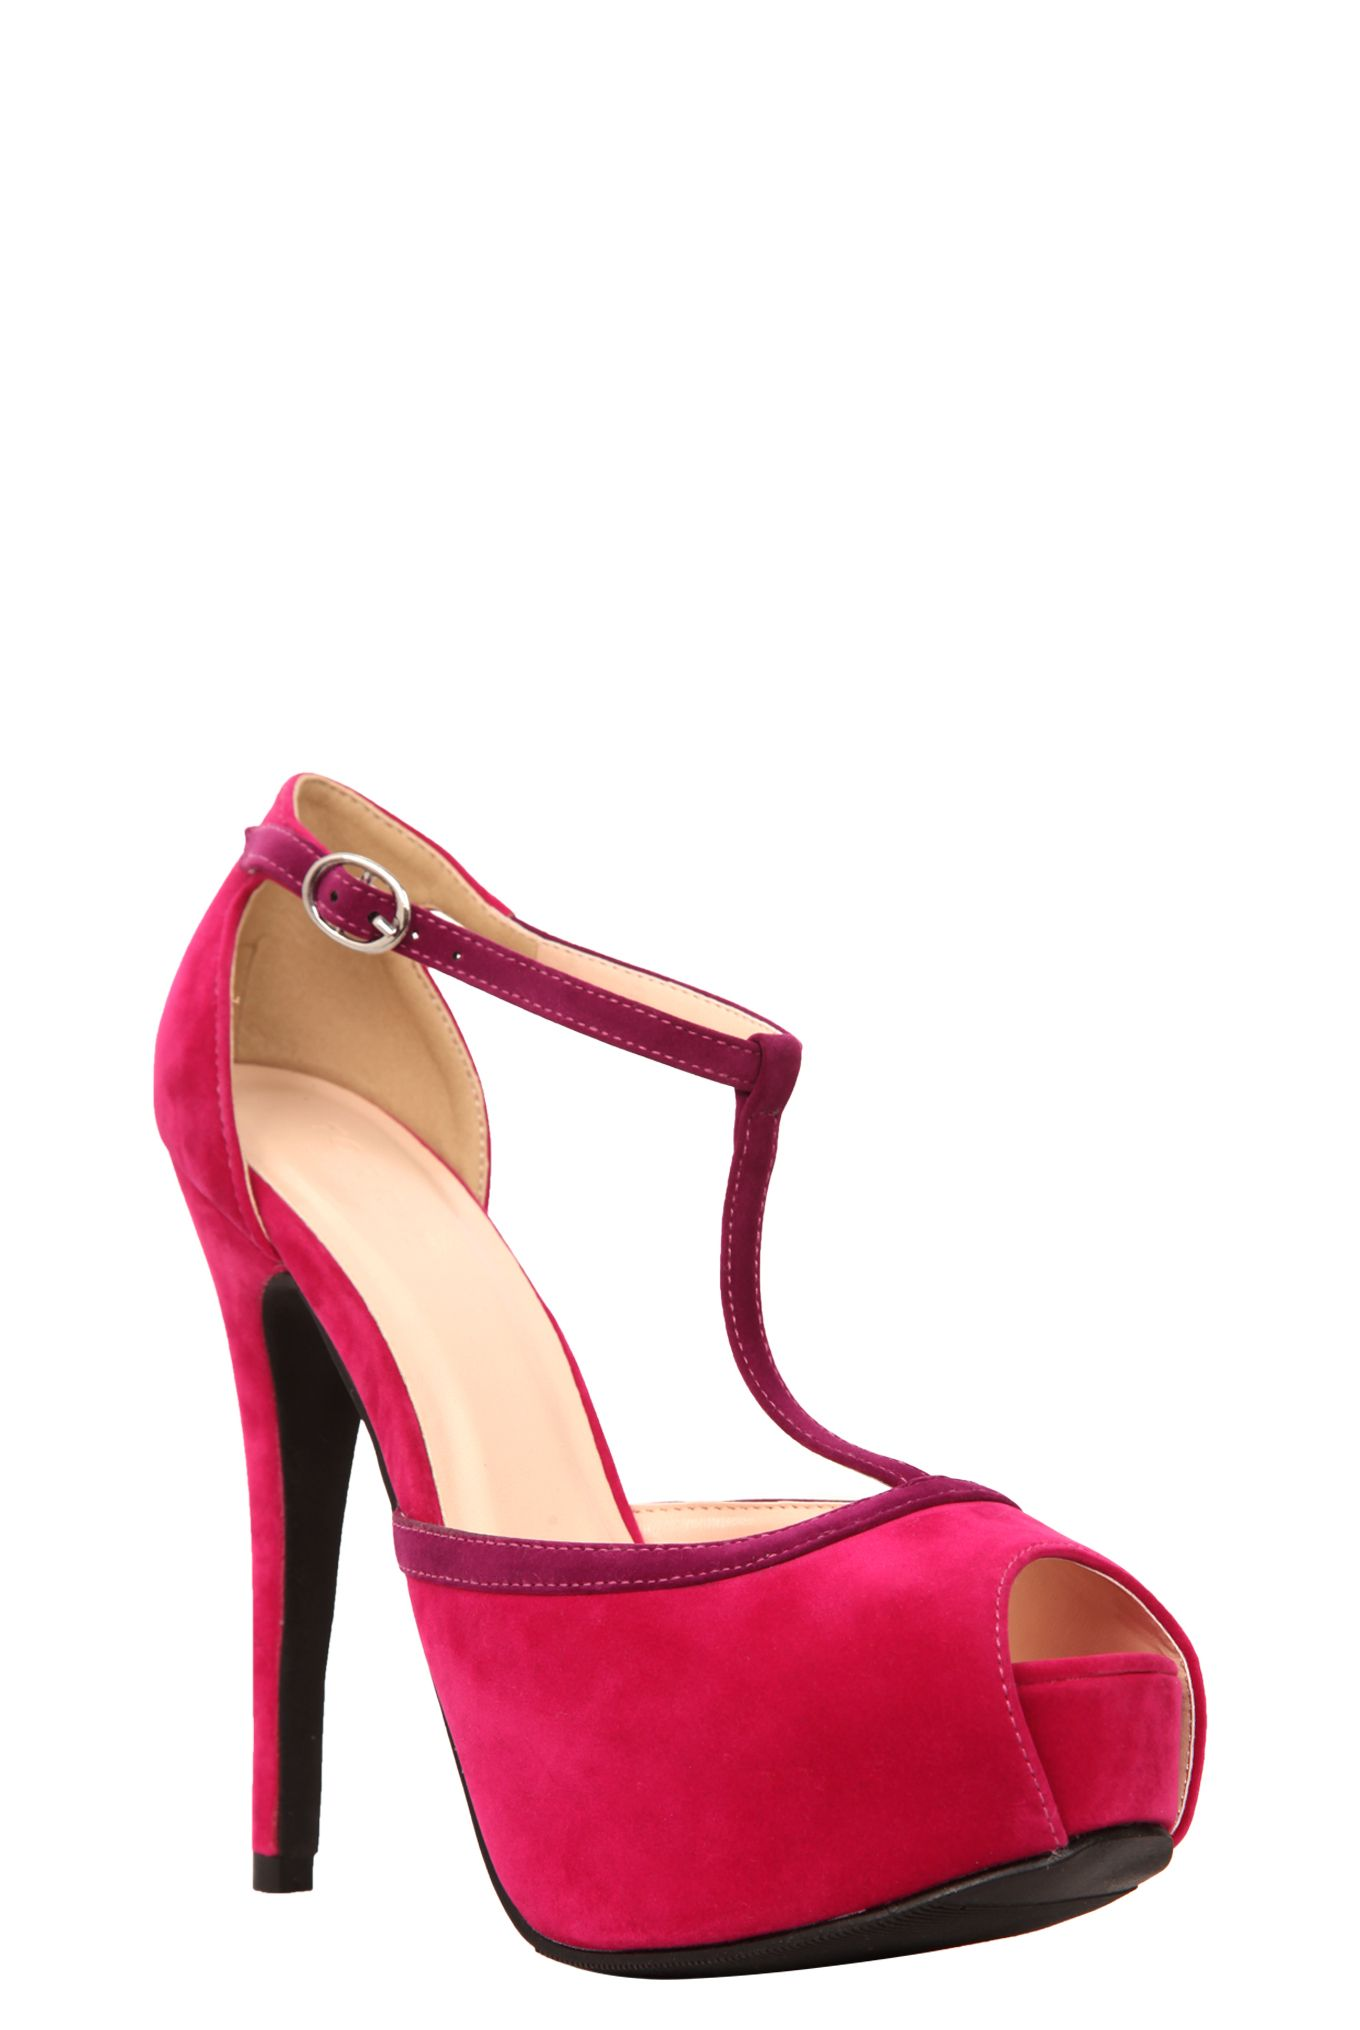 "With a bold, sultry silhouette and sky-scraping height, these peep toe heels fit you to a ""T."" Purple trim contrasts beautifully with the fuchsia suede for a shoe that's perfect for your next sexy date-night look.Fits roomier than the standard medium width."